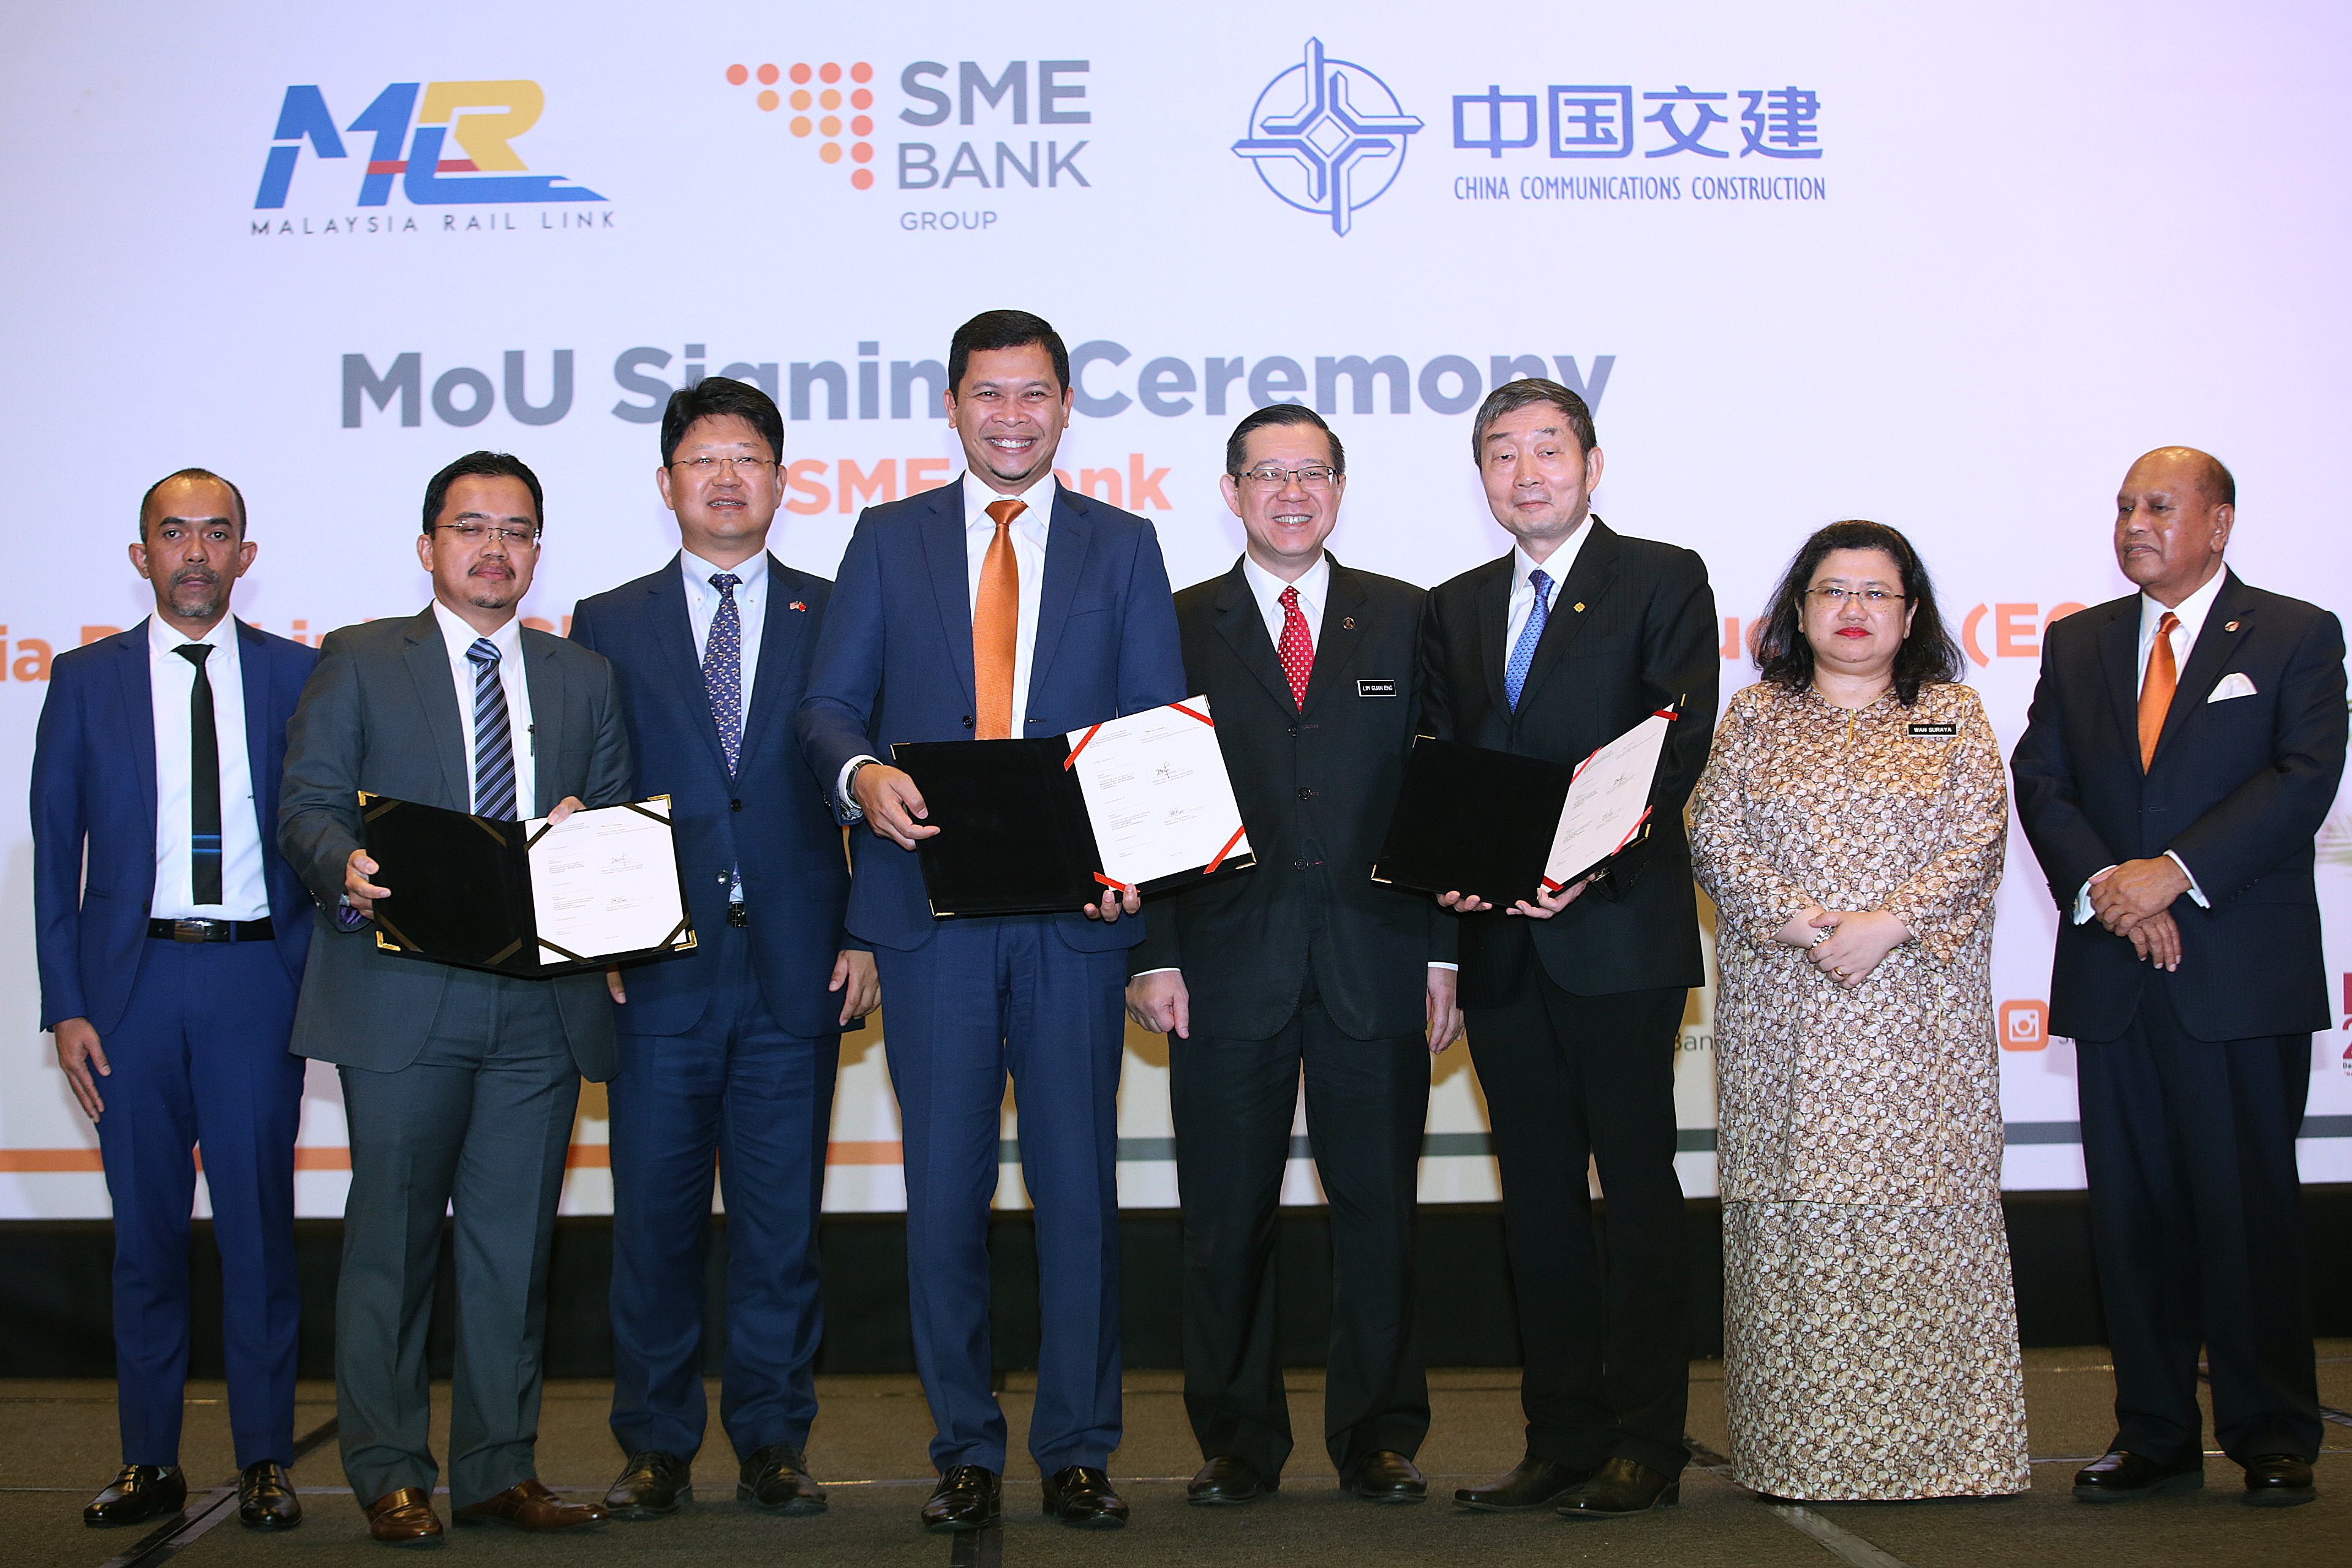 SME Bank sets aside RM1b worth of financing for ECRL contractors